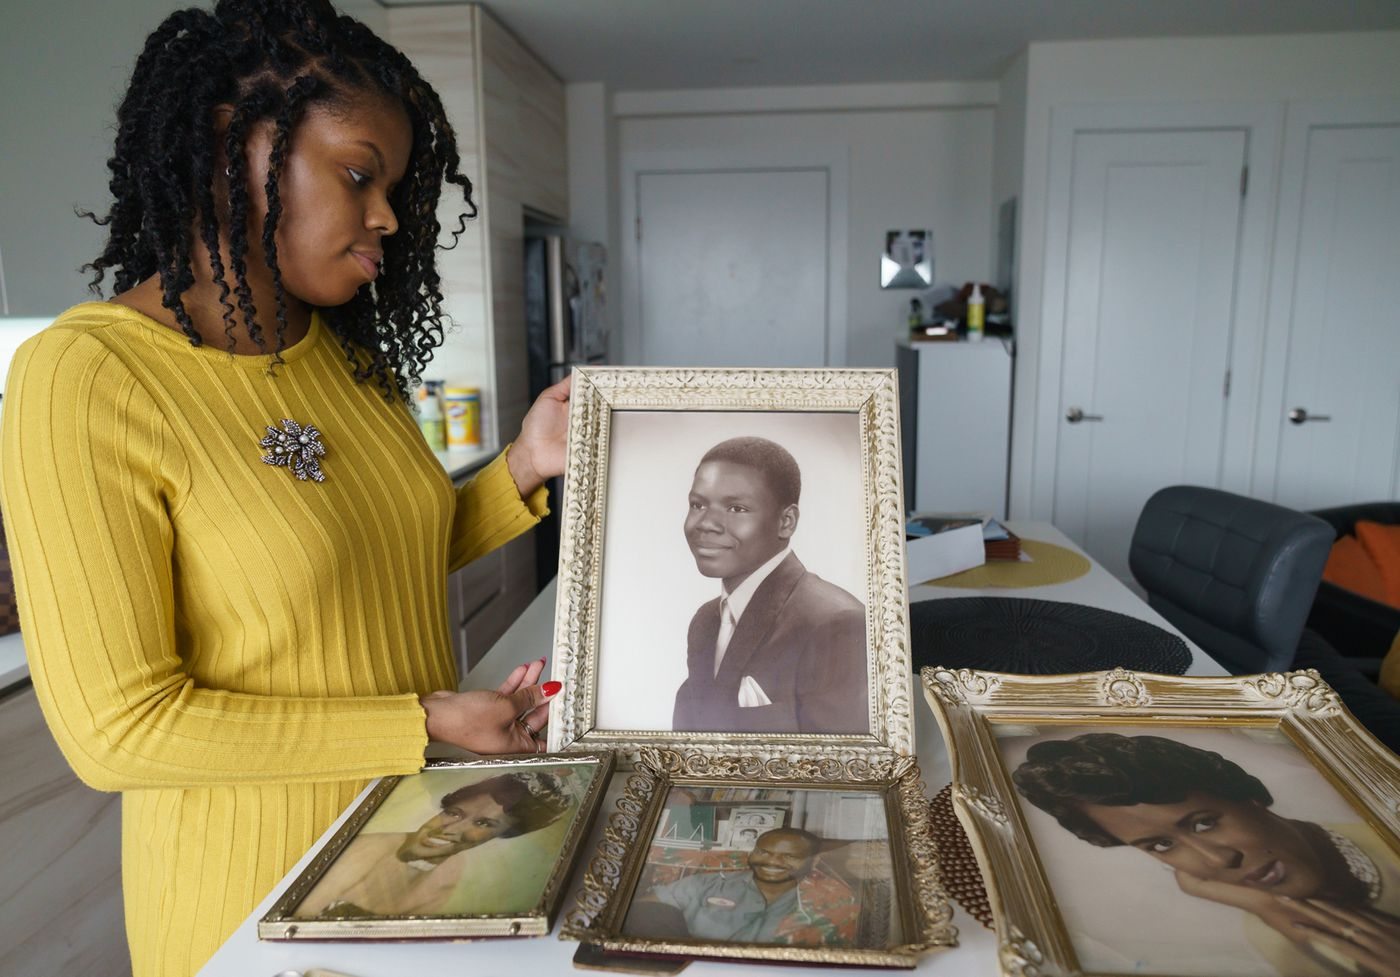 Vaneeda Days, the great-niece of Dorothy Beam, holds a photograph of Joseph Beam, who was a trailblazing black gay author from Philadelphia.